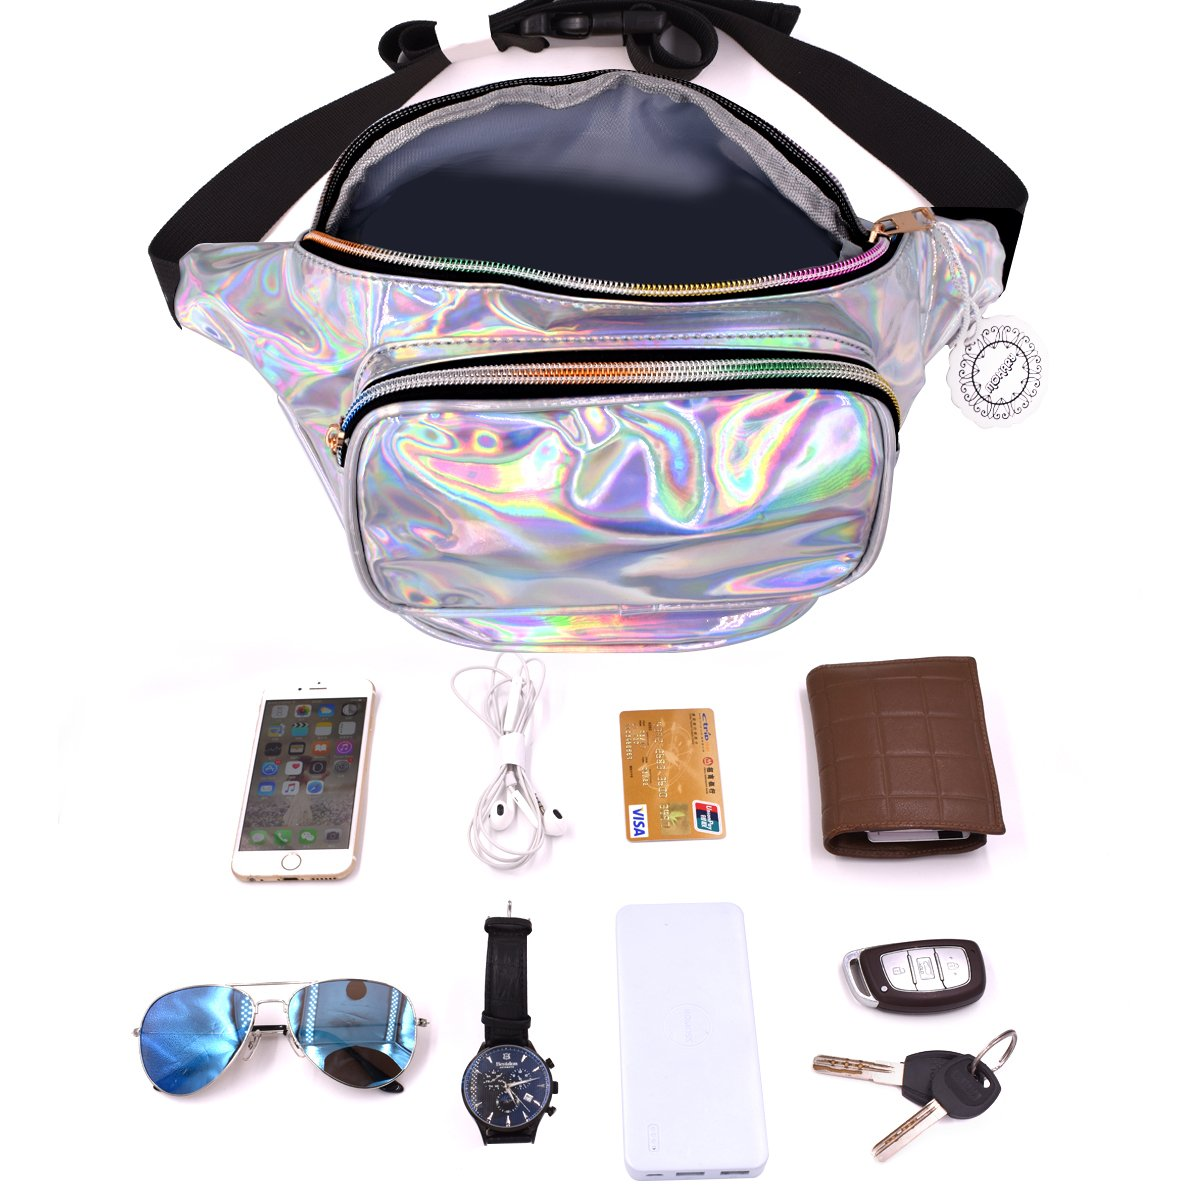 Water Resistant Shiny Neon Fanny Bag for Women Rave Festival Hologram Bum Travel Purse Waist Pack by MOHARY (Image #3)